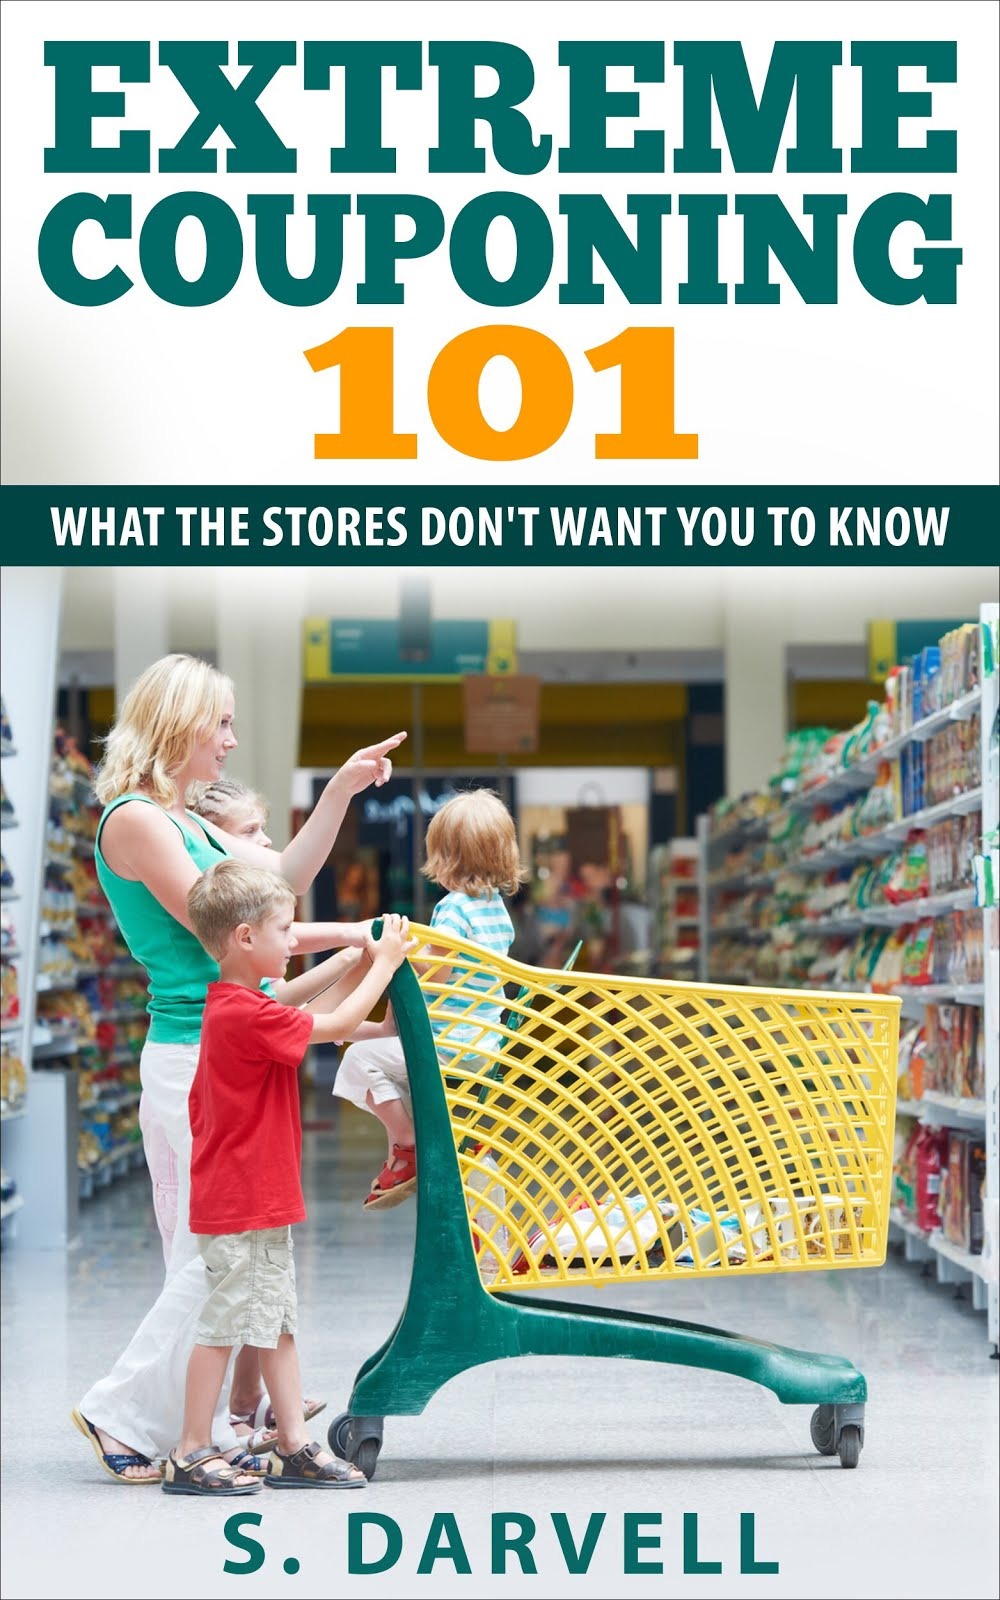 Extreme Couponing 101: What the stores don't want you to know